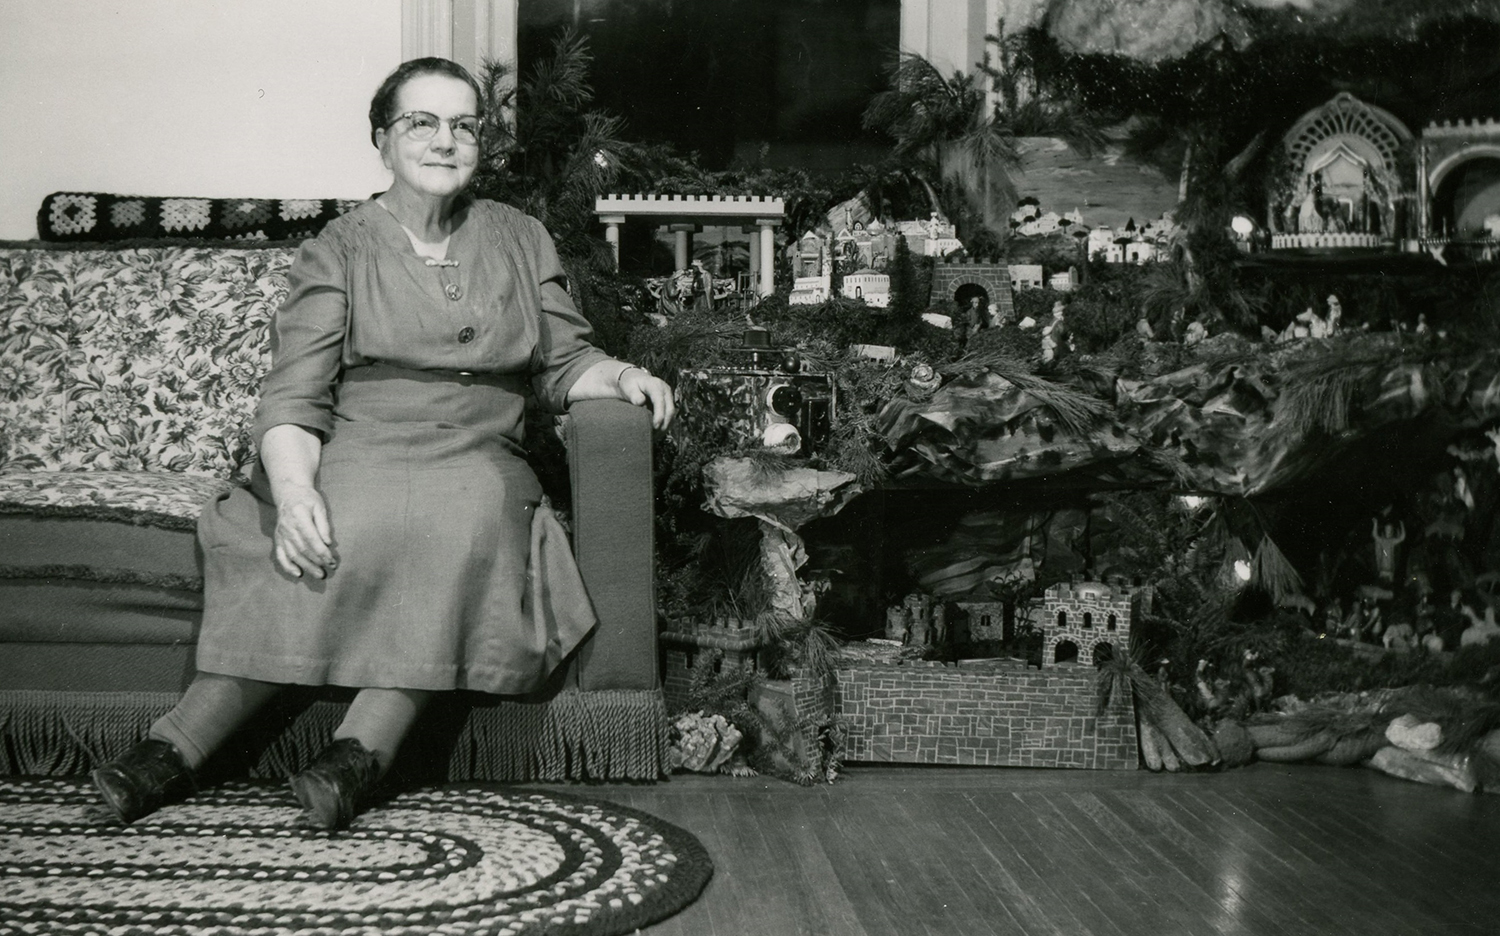 Folk artist Jennie Trein (1879-1977) created her first Christmas putz in 1908, and for the next six decades she built a new one each year—complete with lights, sound effects, and narration. The Trein putz, which grew to include over 1000 pieces, was part of the Advent season for generations of visitors who were invited into her living room to view the display.